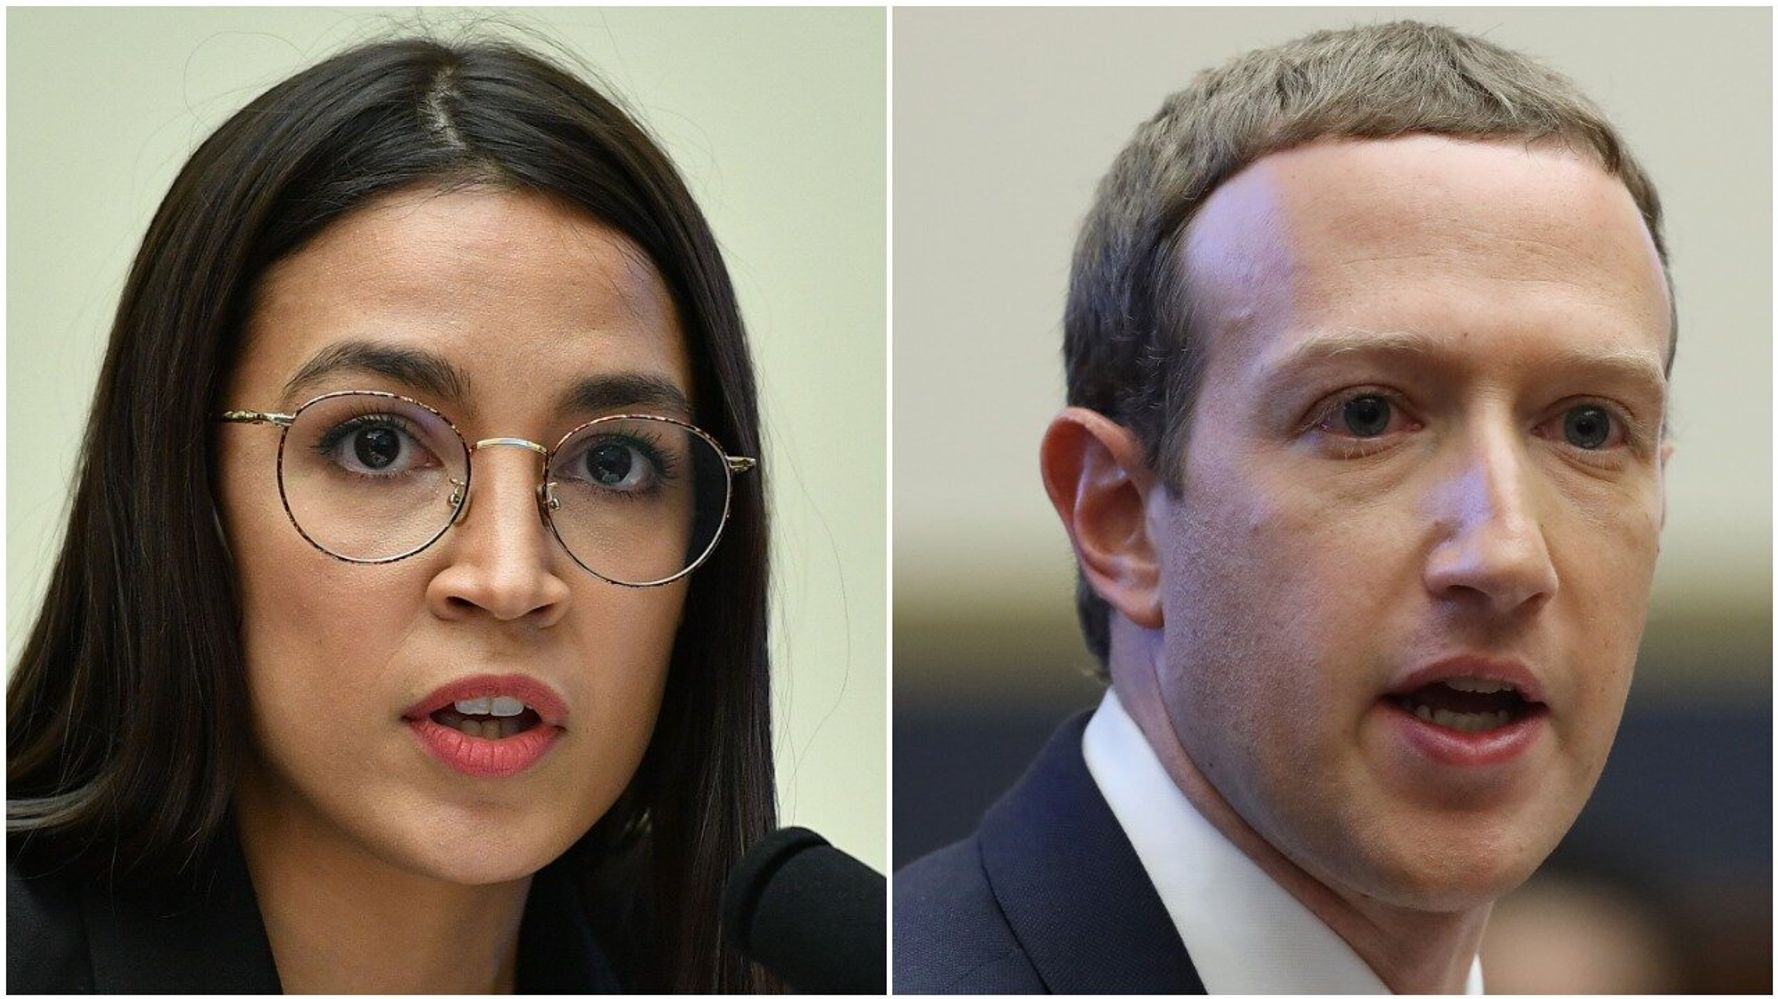 Westlake Legal Group 5db0e6fc200000bf22506995 Twitter Users Break Out The Popcorn As Ocasio-Cortez Smokes Zuckerberg